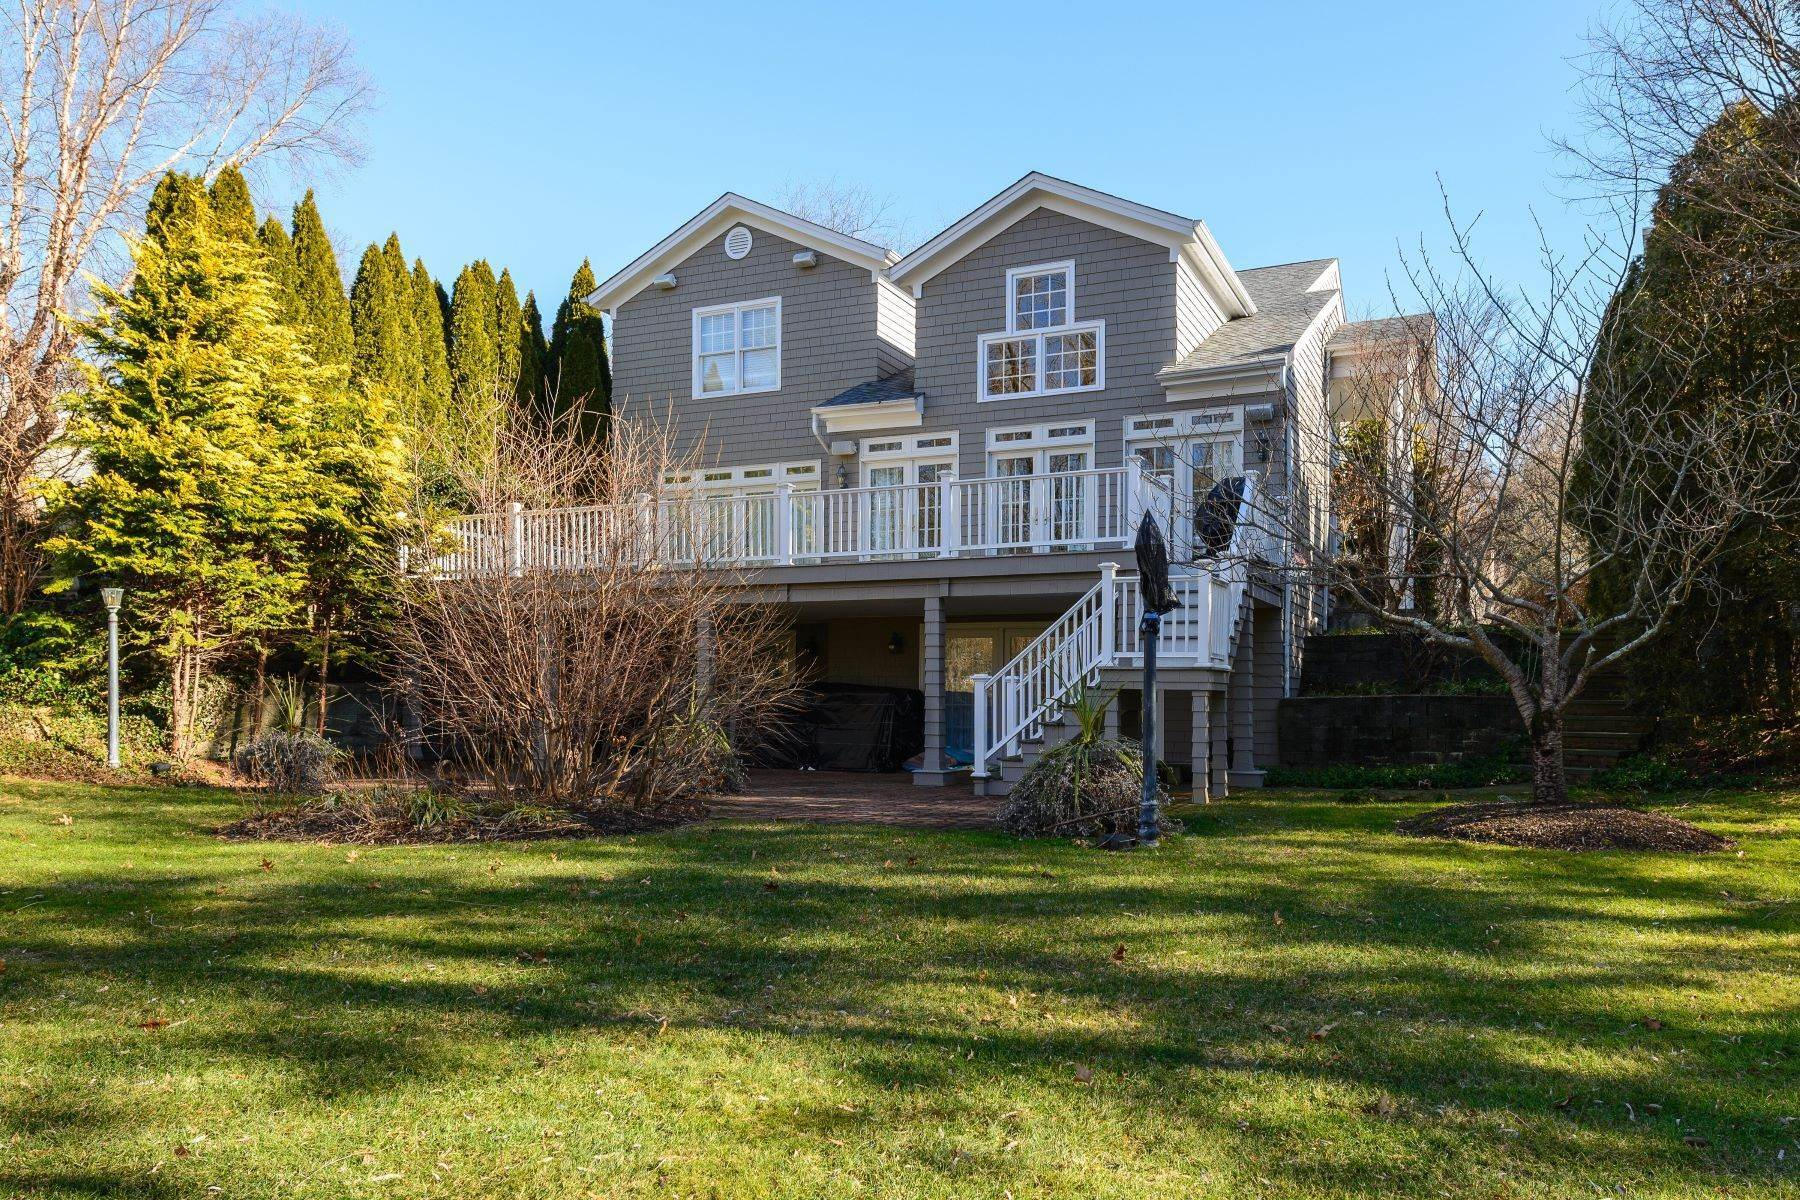 Single Family Homes for Sale at 3 Fieldstone Lane, Oyster Bay, Ny, 11771 3 Fieldstone Lane Oyster Bay, New York 11771 United States